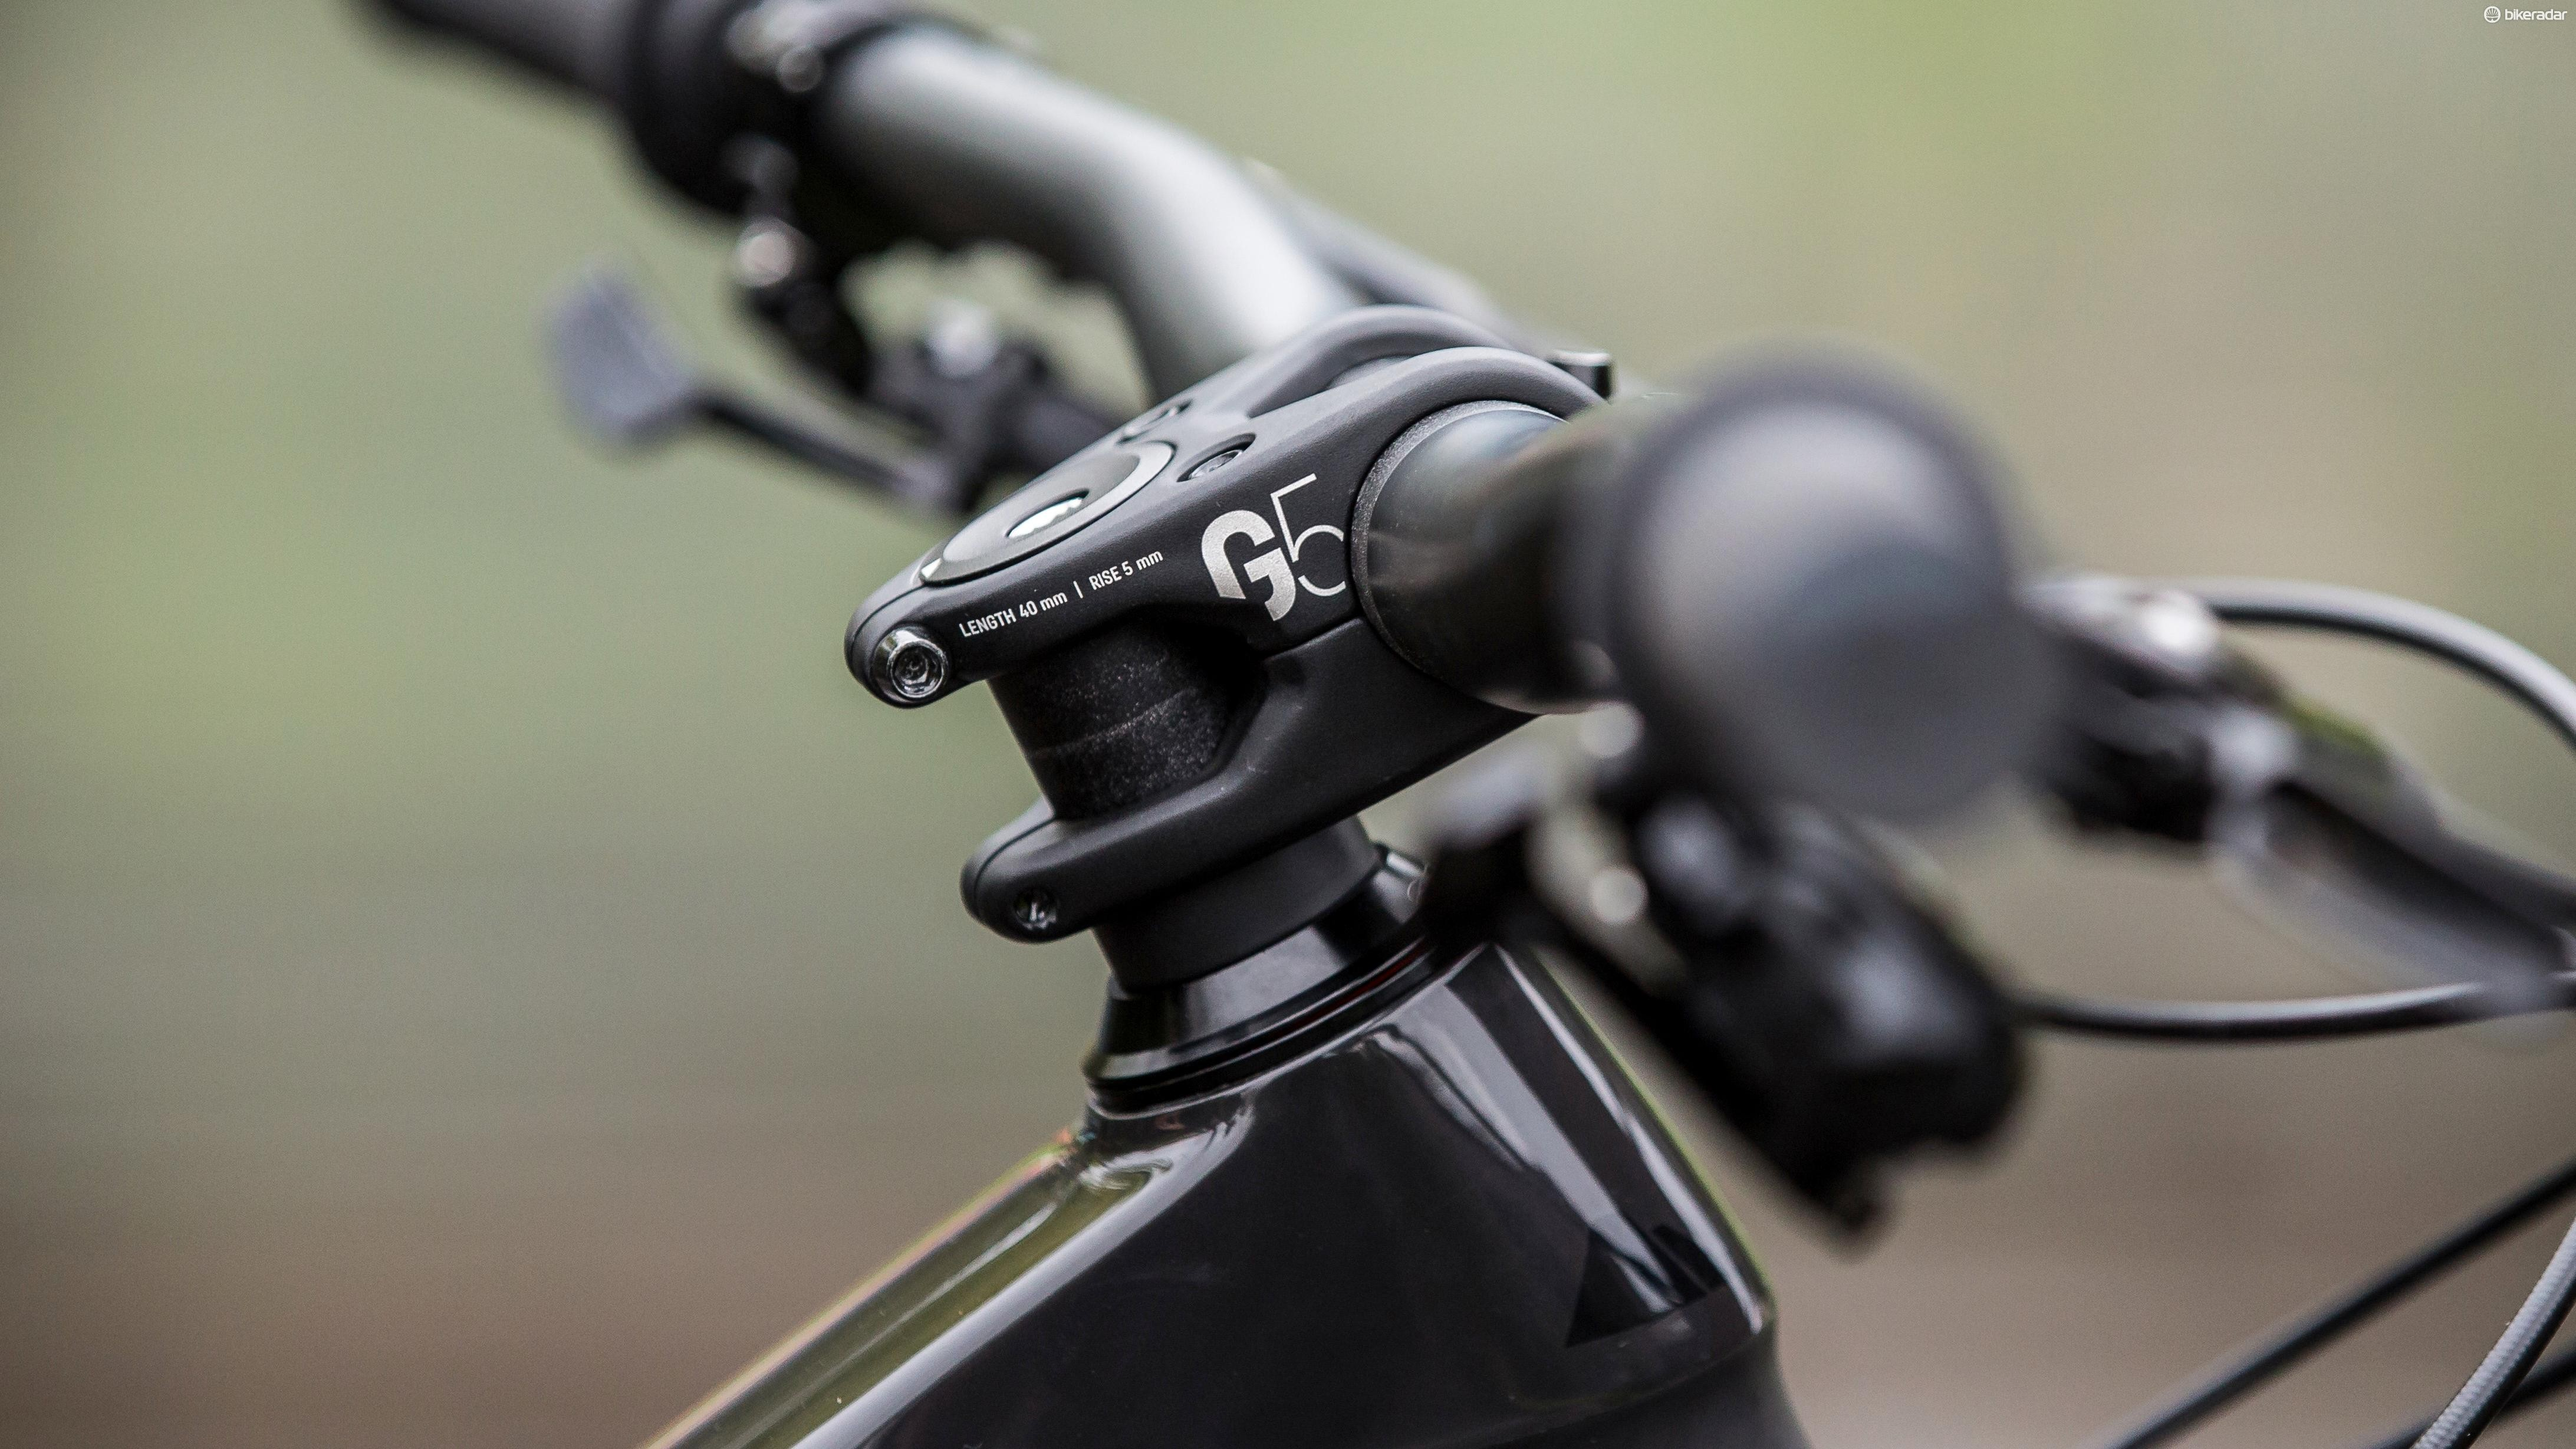 Canyon's new G5 line of components is there to allow the German bike builder to control quality and performance